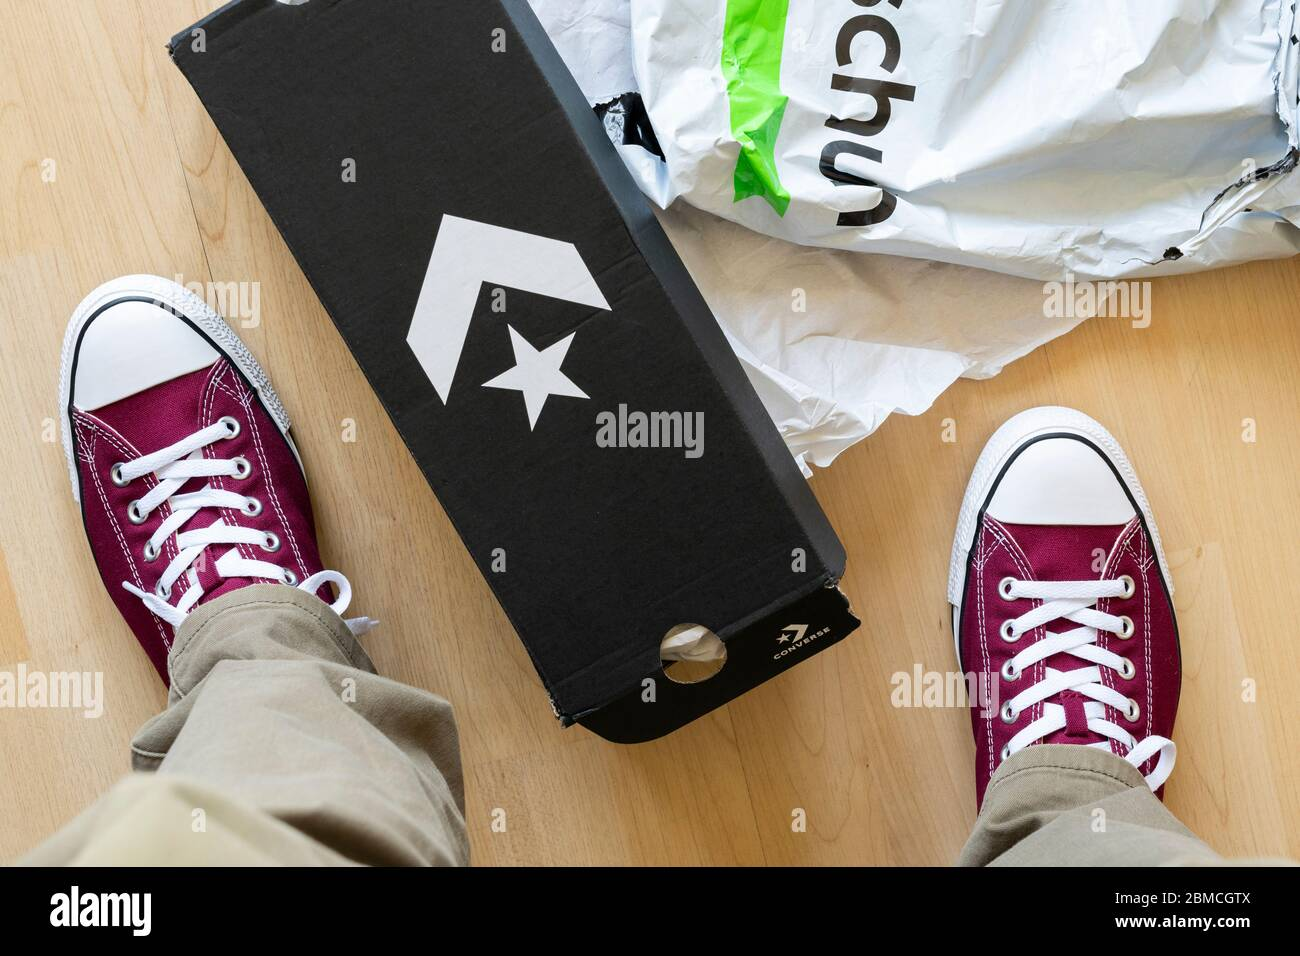 De Dios religión Pompeya  Converse Shoes High Resolution Stock Photography and Images - Alamy